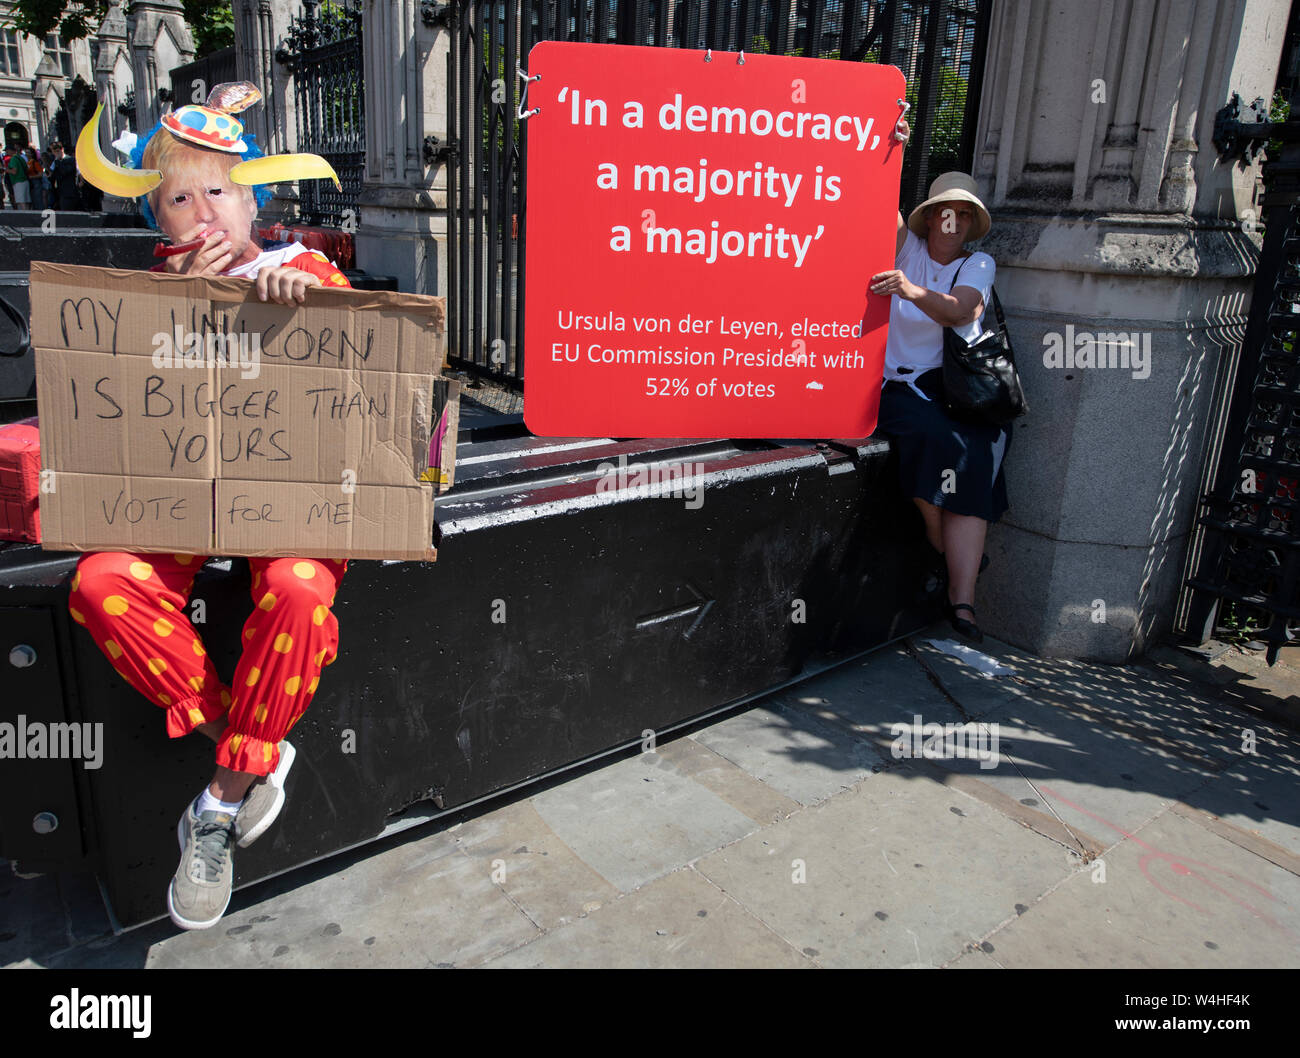 Houses of Parliament, London, UK. 23rd July 2019. Pro and anti Brexit demonstrators outside Parliament in Westminster await the Conservative Party announcement of their next leader and Prime Minister. Credit: Malcolm Park/Alamy Live News. Stock Photo